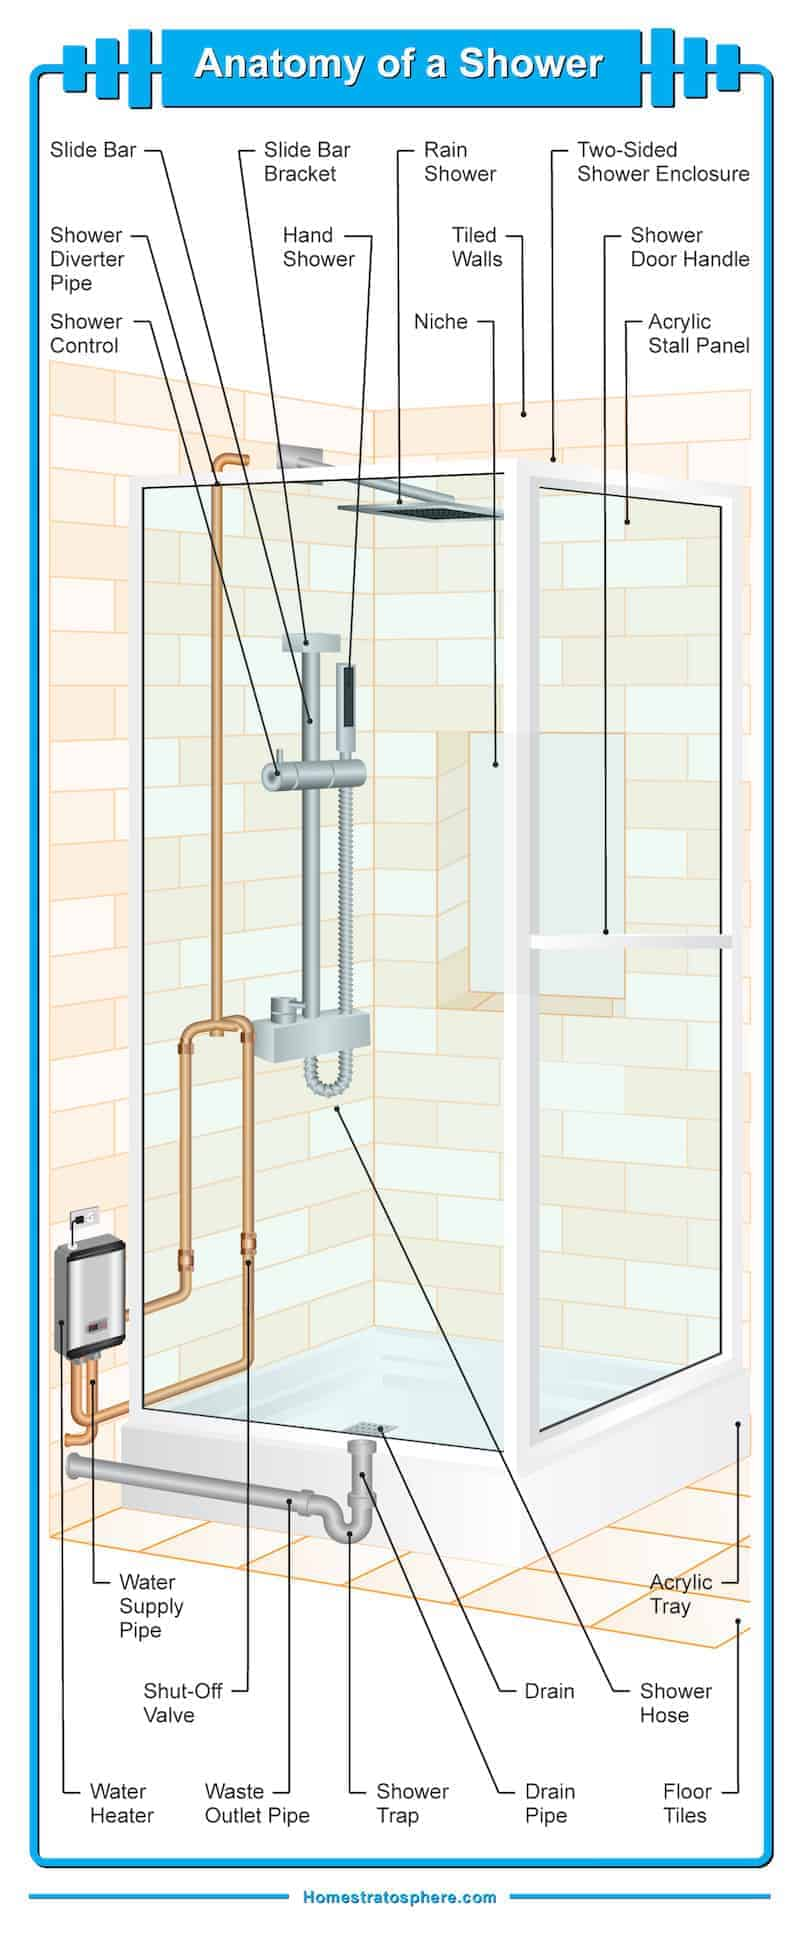 Parts Of Shower Image Cabinets And Moen Ca87559srs List Diagram Ereplacementpartscom 21 A Bathroom Excellent